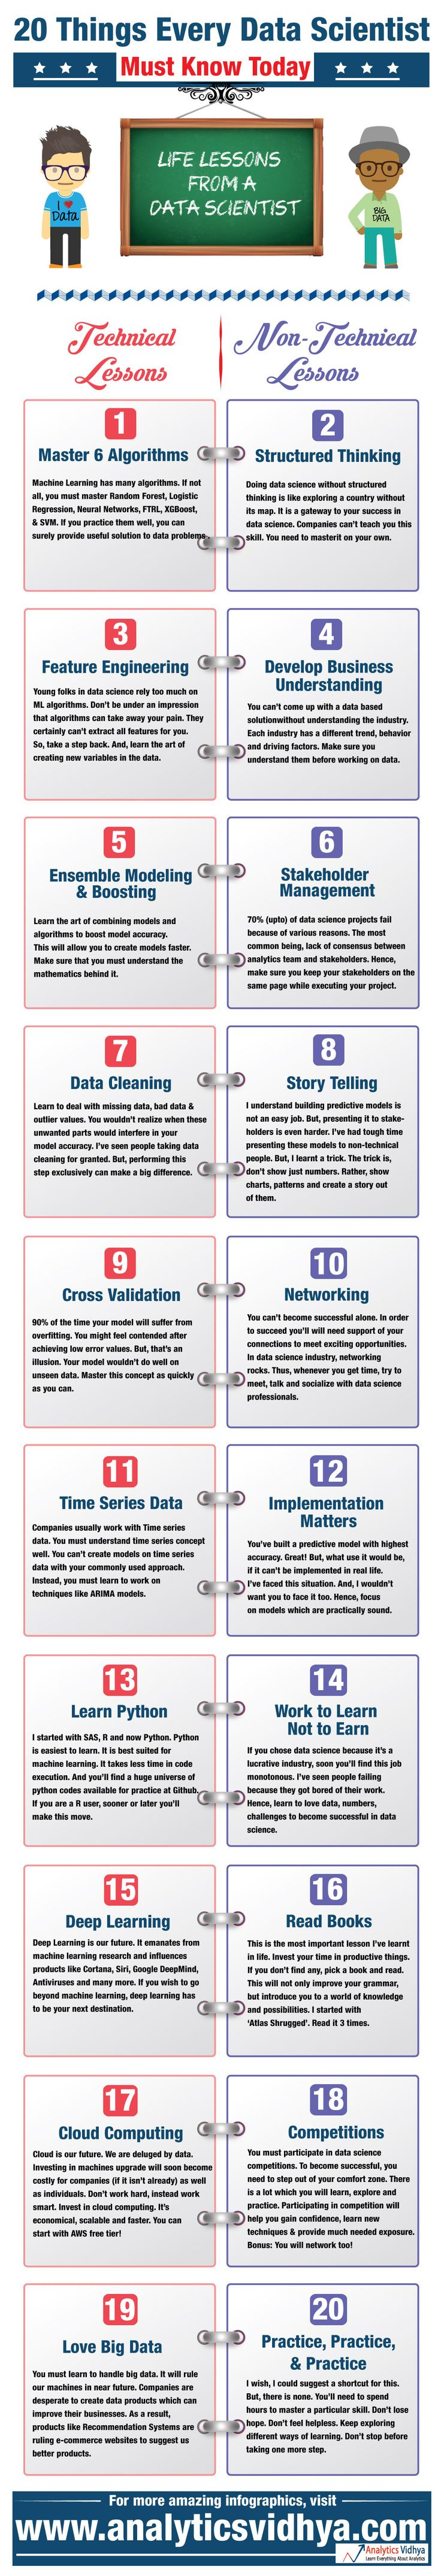 20 things every data scientist must know